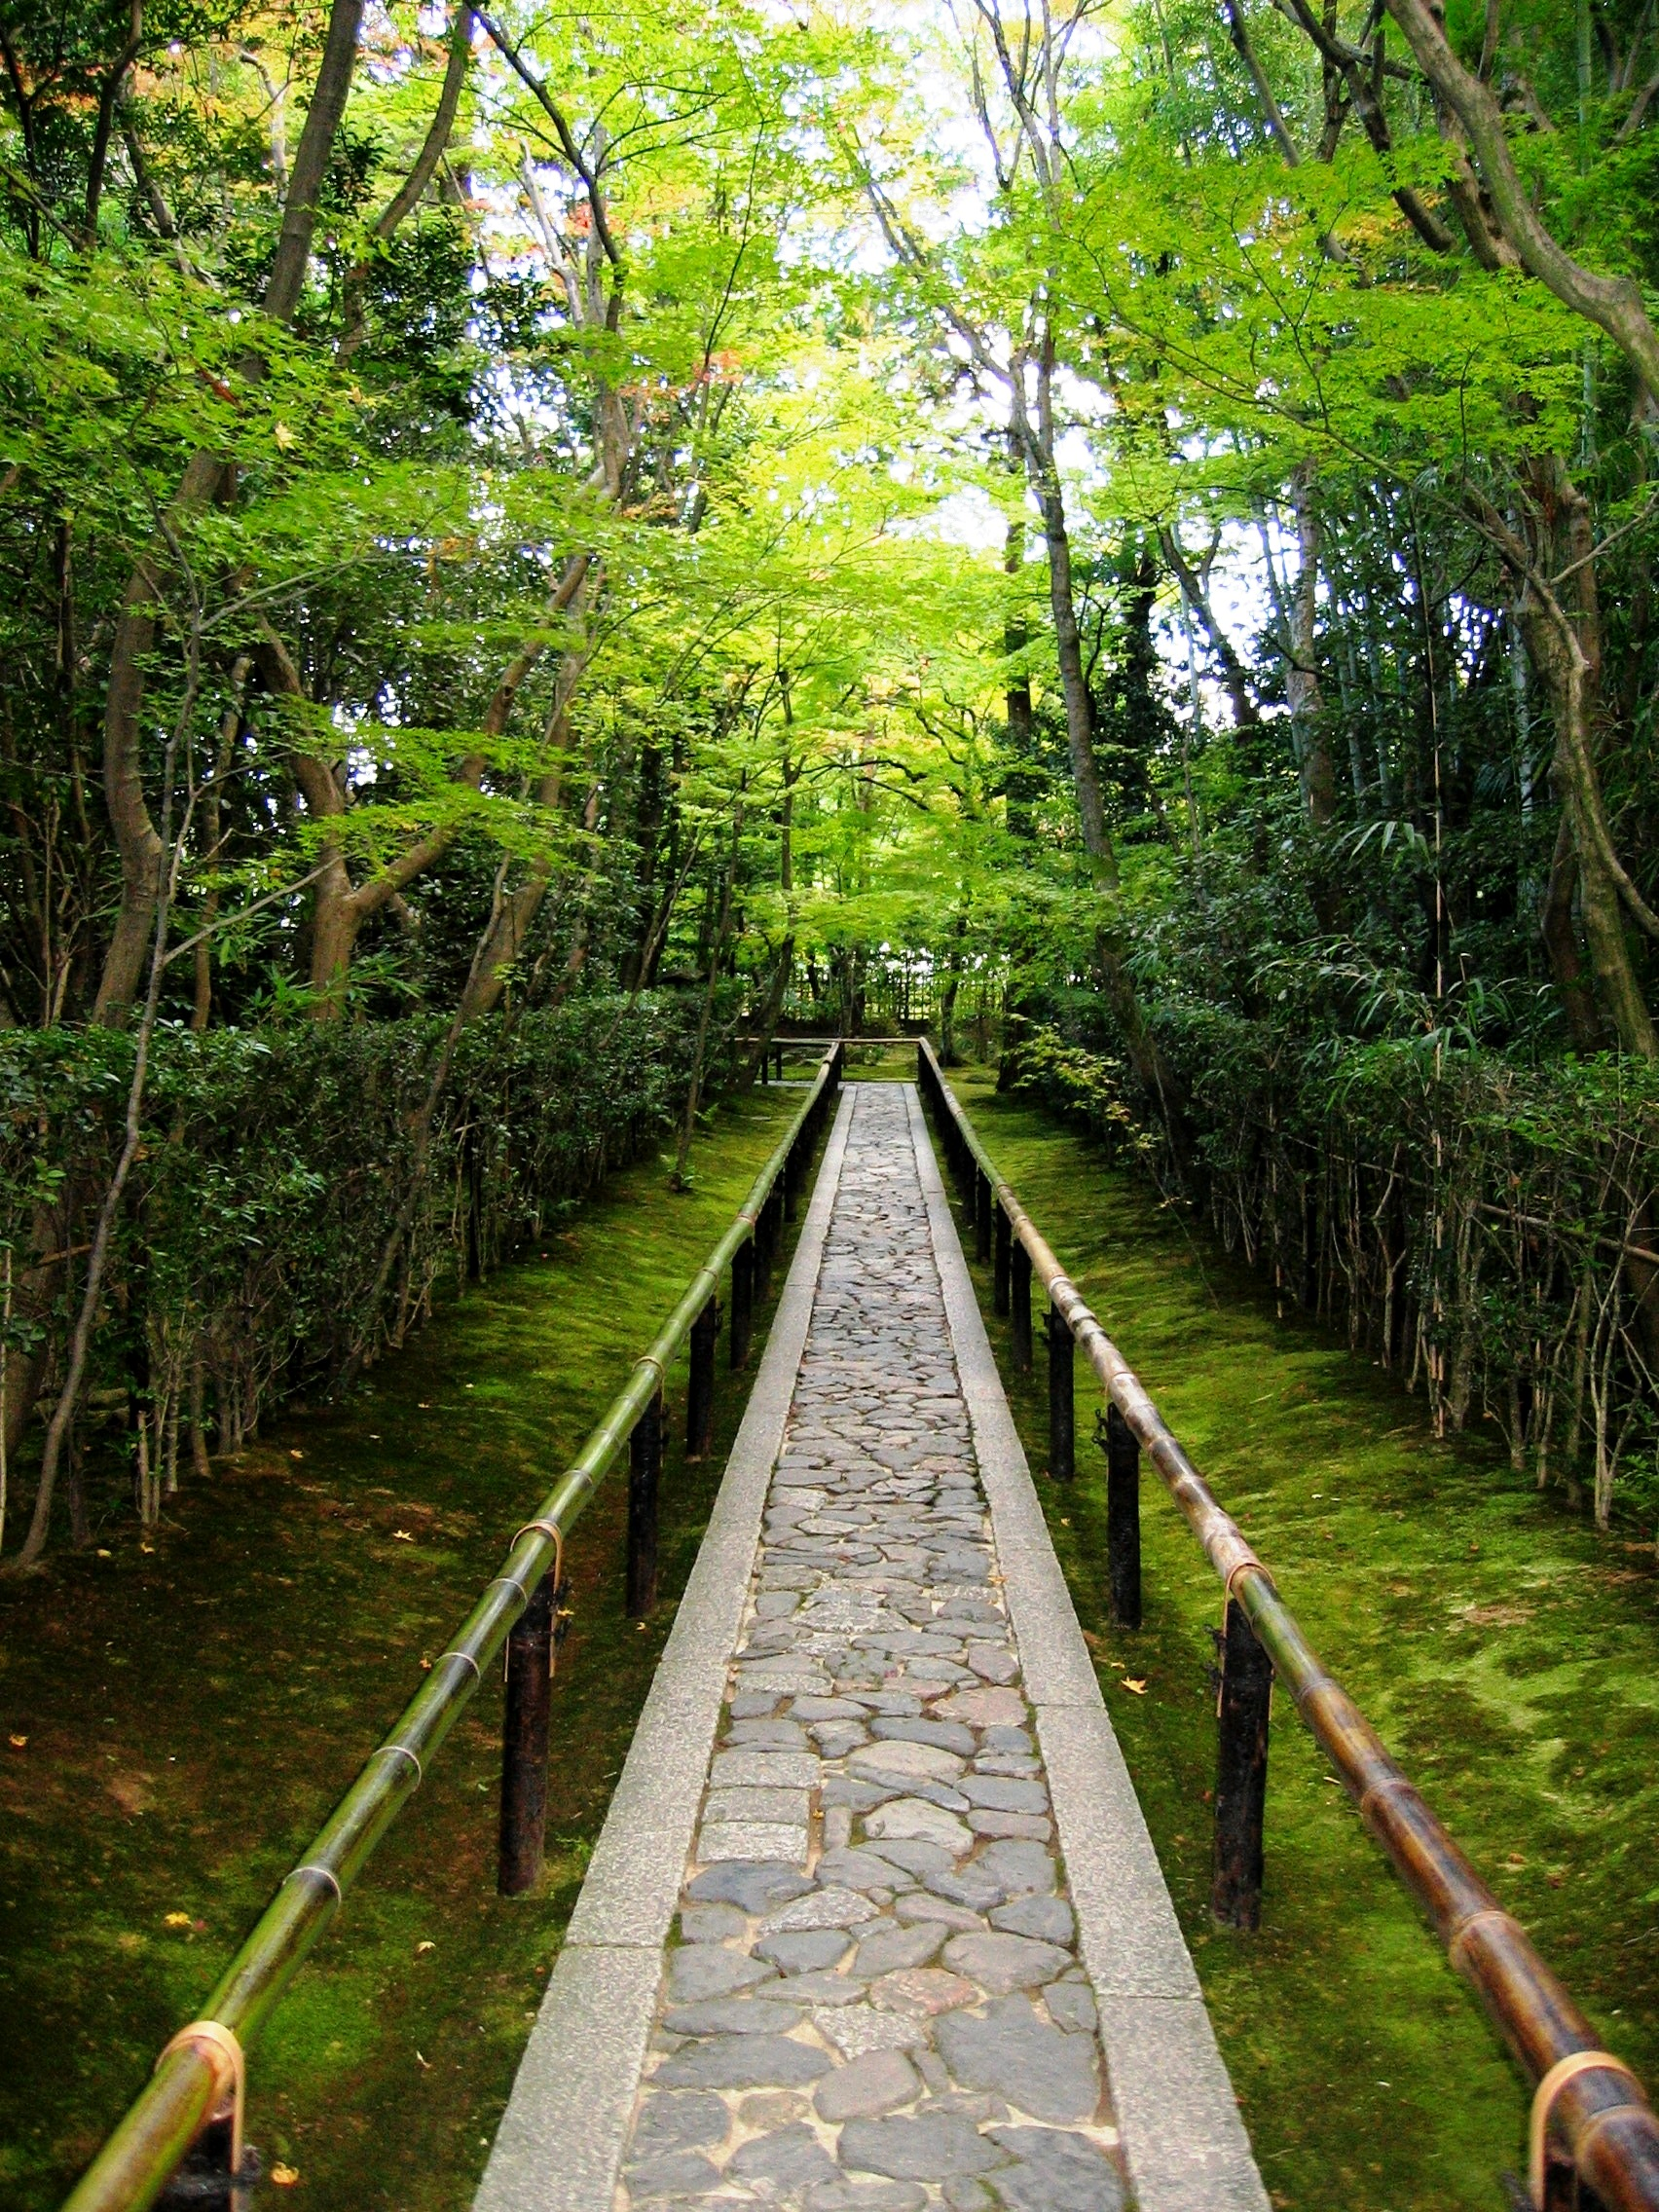 Koto-in_Zen_Temple_Kyoto_-_entrance_walkway.jpg (1704 × 2272)